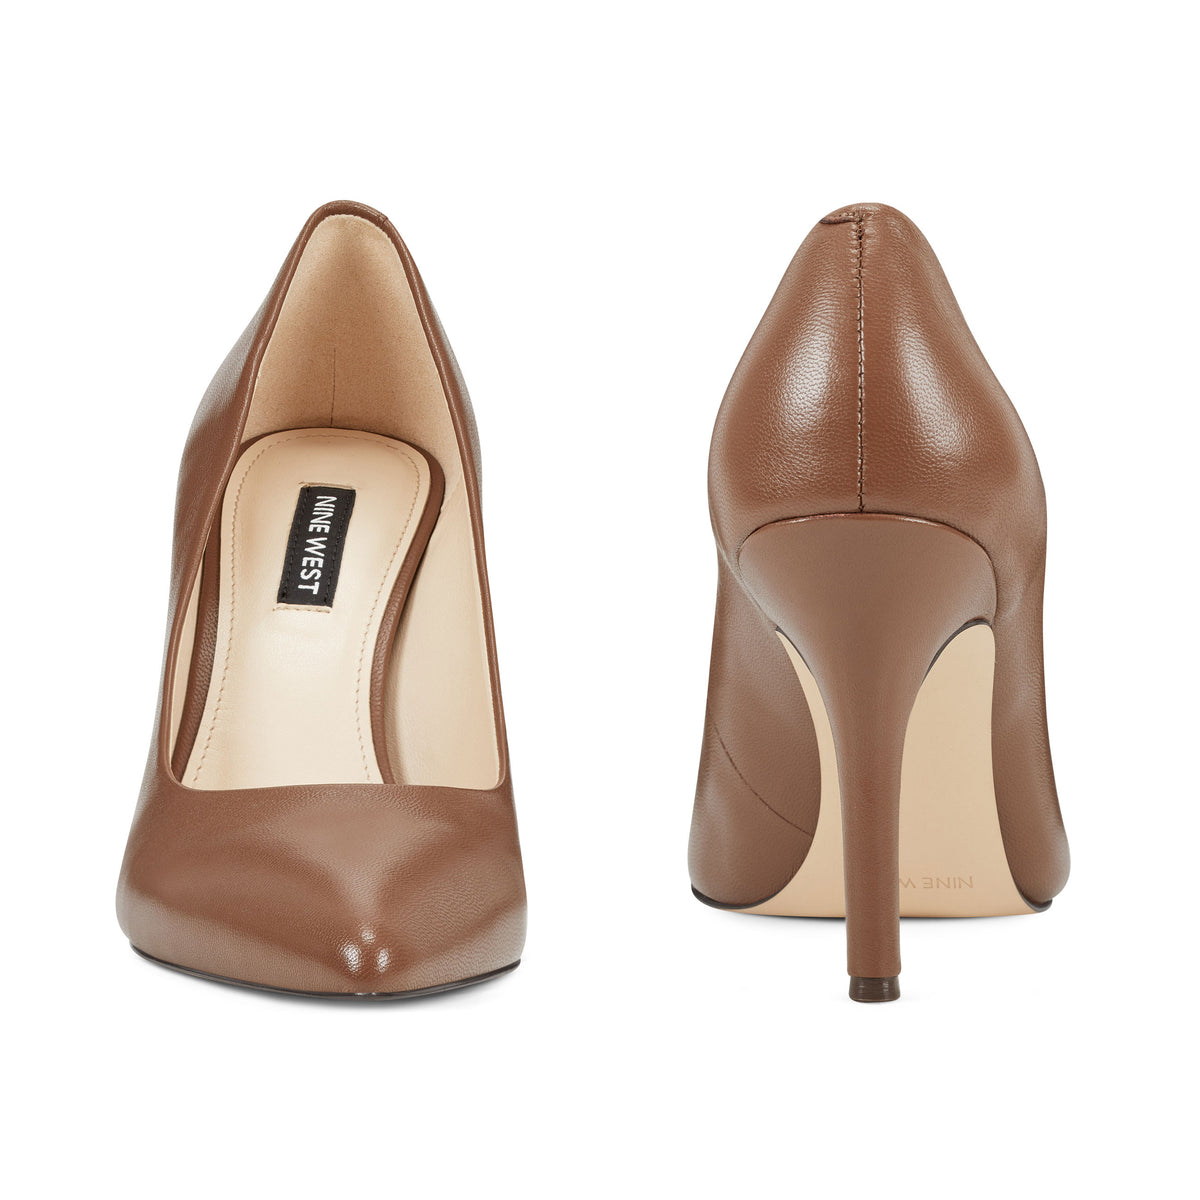 flax-pointy-toe-pumps-in-cognac